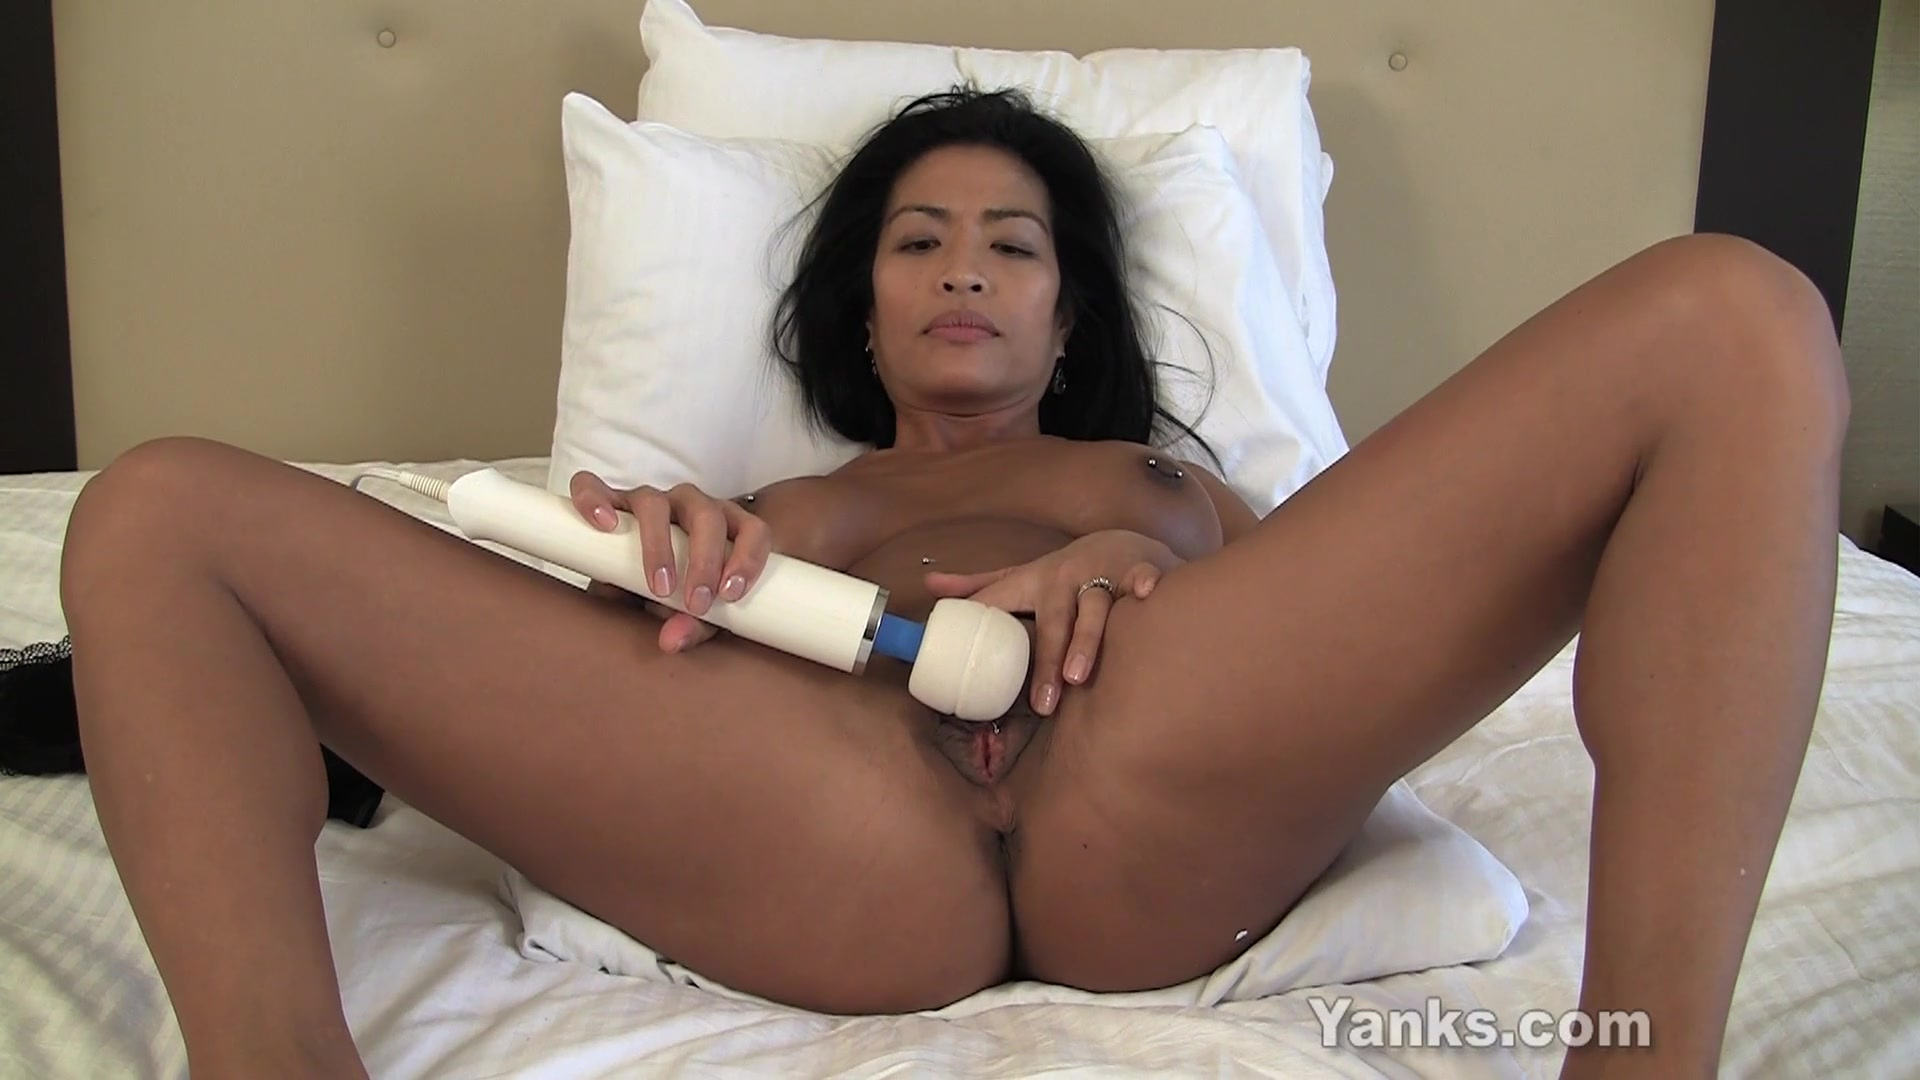 Asian Milf Tia Vibrating Her Pussy  Yanks Xxx Tube Channel-4788